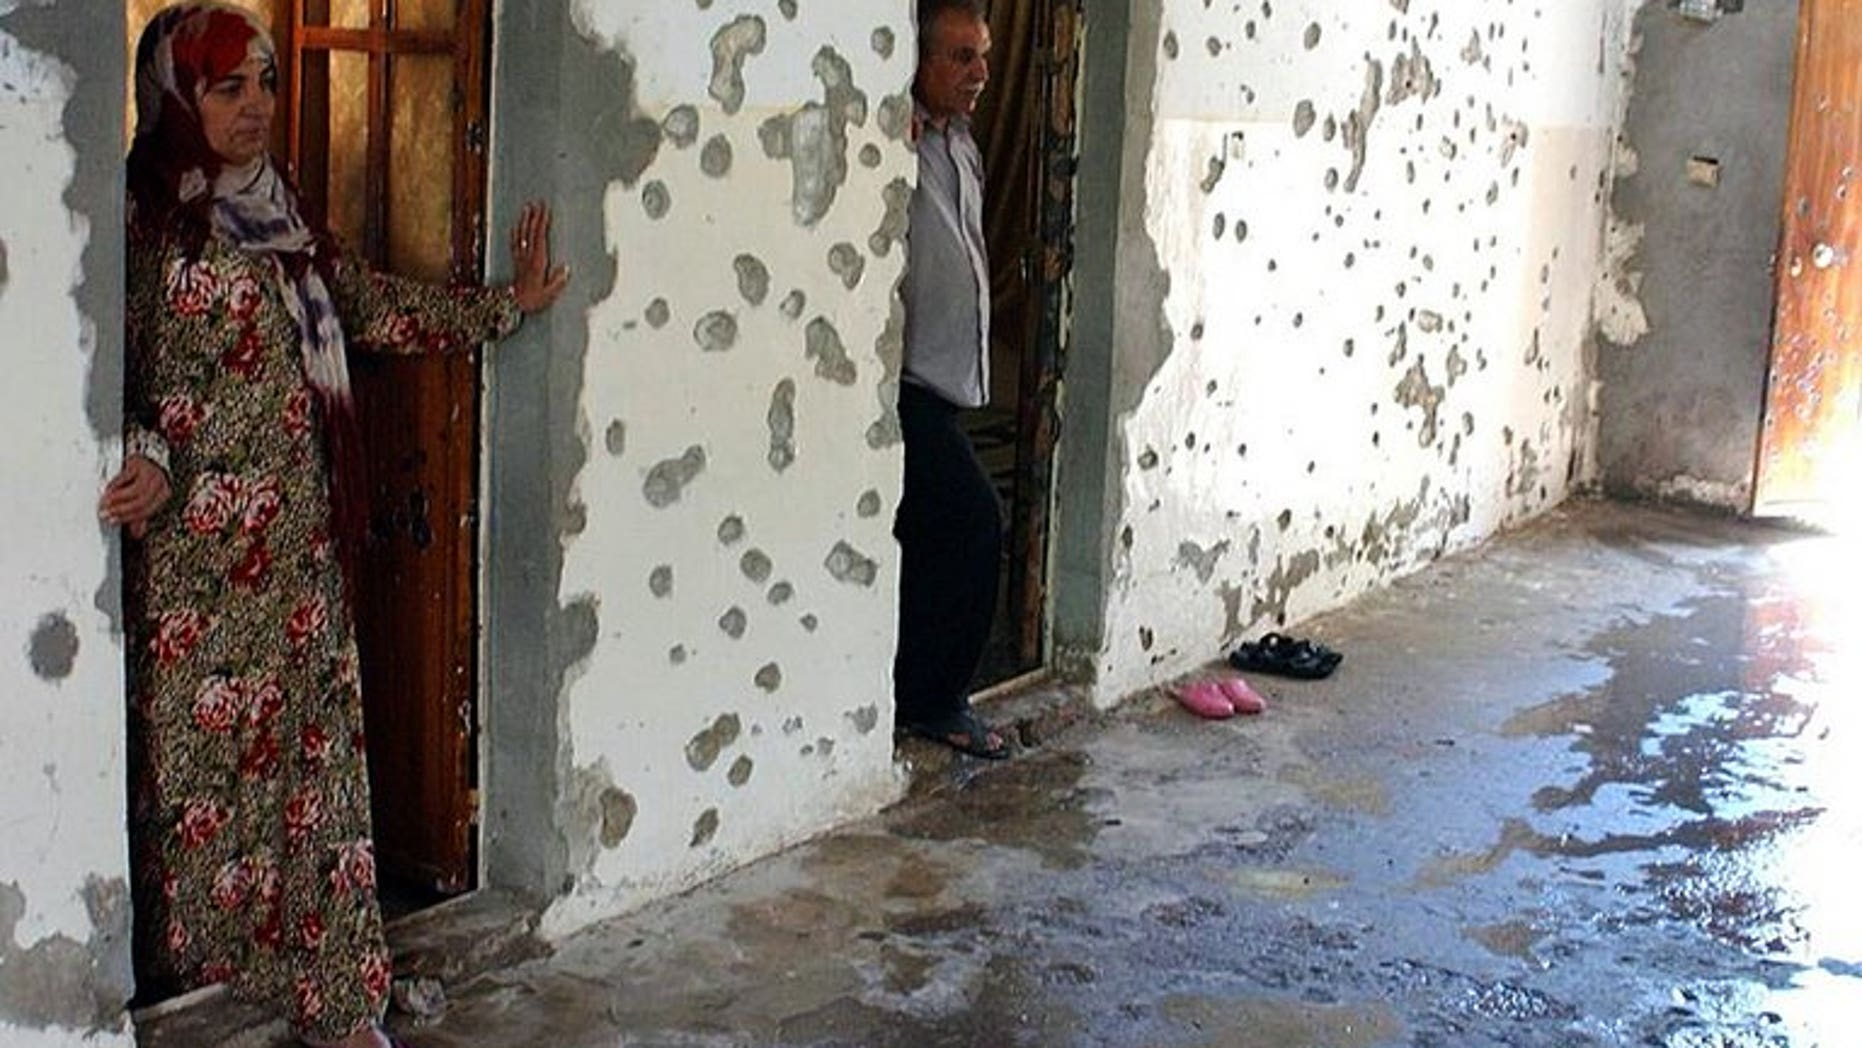 A man and a woman stand next to a wall riddled with bullets in the courtyard of a house in the Syrian town of Ras al-Ain on August 3, 2013. Al-Qaeda loyalists attacked a mainly Kurdish town in northeastern Syria sparking fighting in which 17 people were killed, two of them ambulance crew, a watchdog said on Saturday.